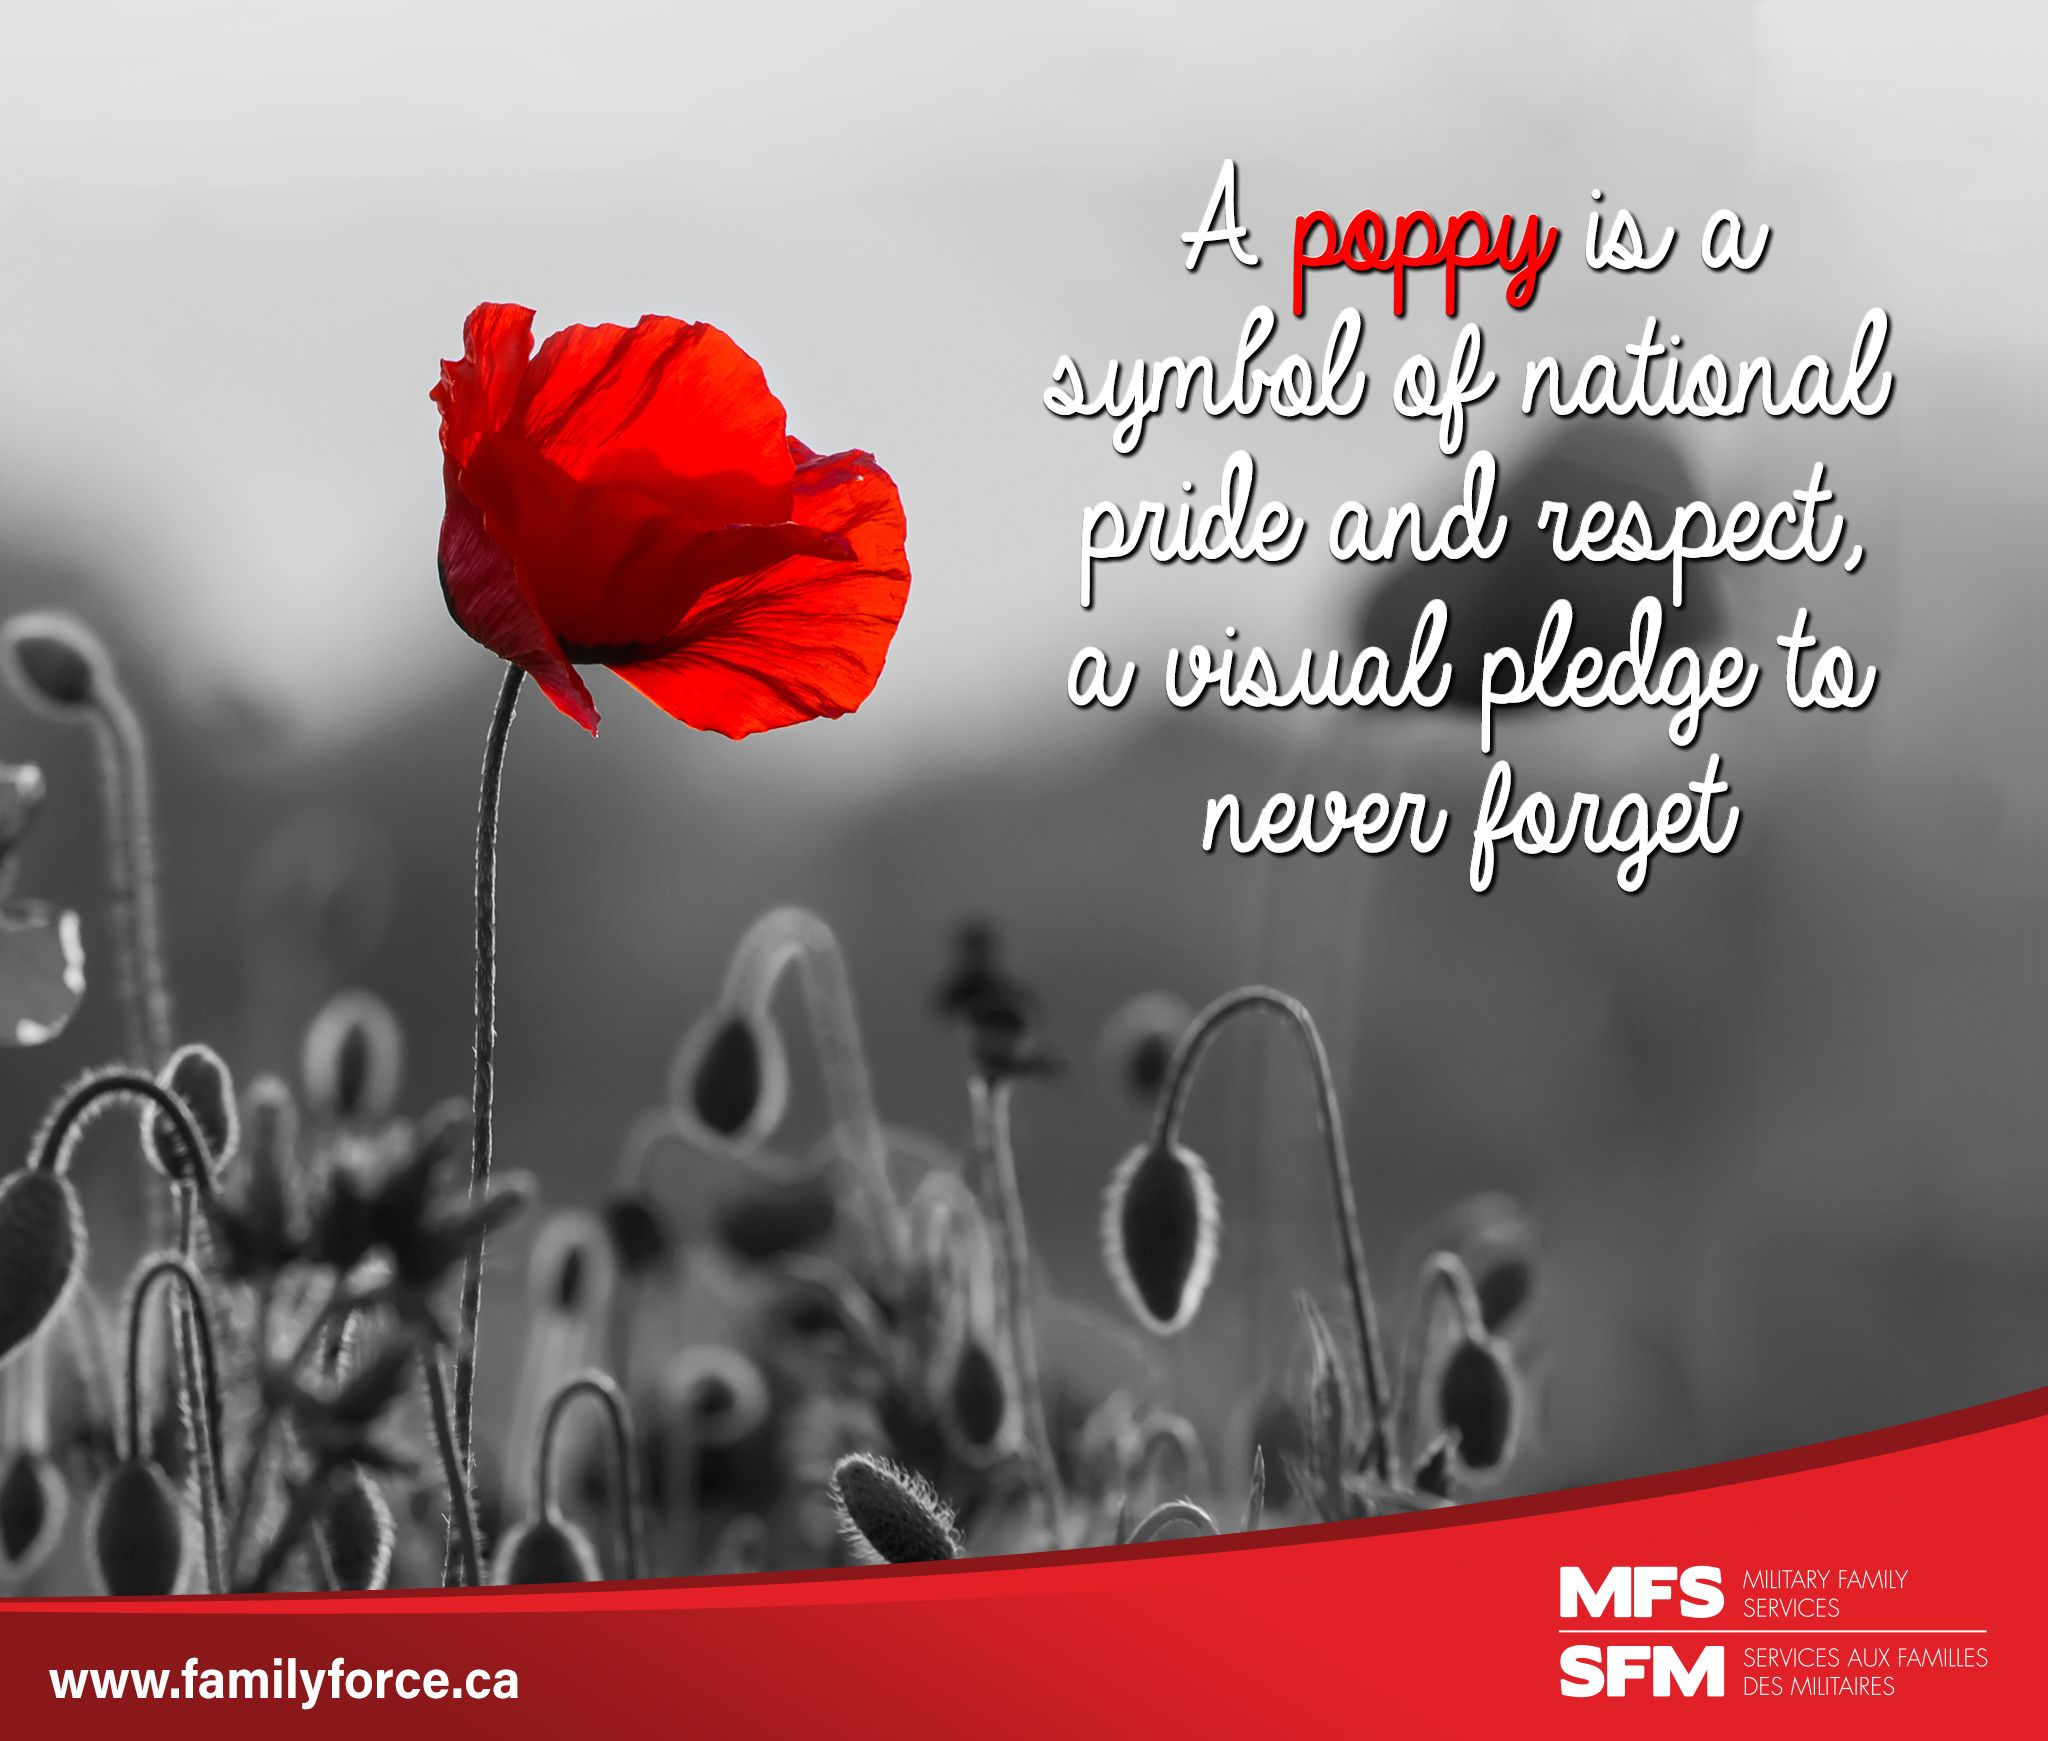 What does a poppy mean to you? To us, it is much more than just a having a pin on a jacket. It is a symbol of national pride and respect, a visual pledge to never forget the Canadian Armed Forces members and #Veterans who are serving and have served our country.